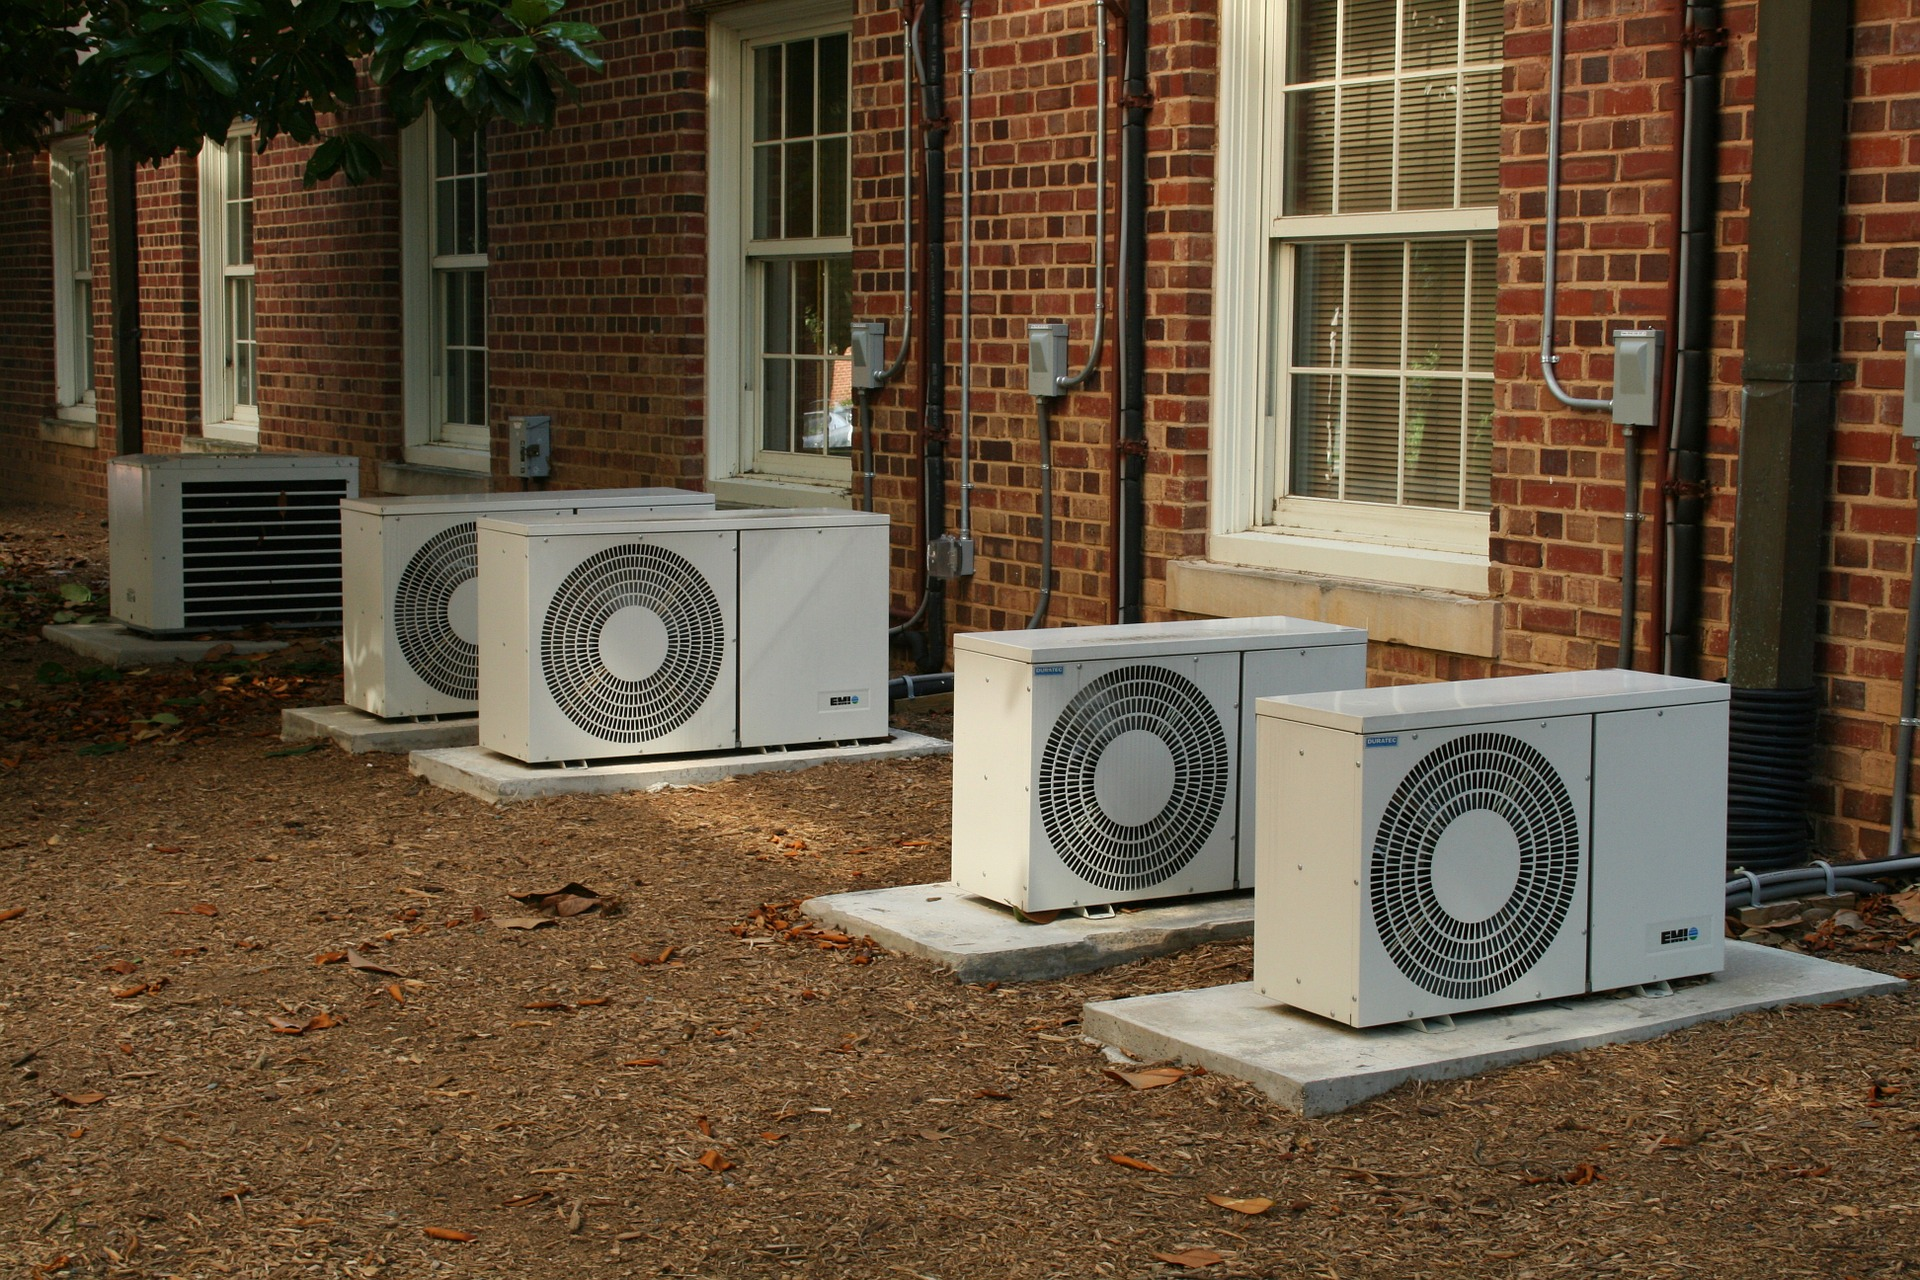 picture of compressors outside homes